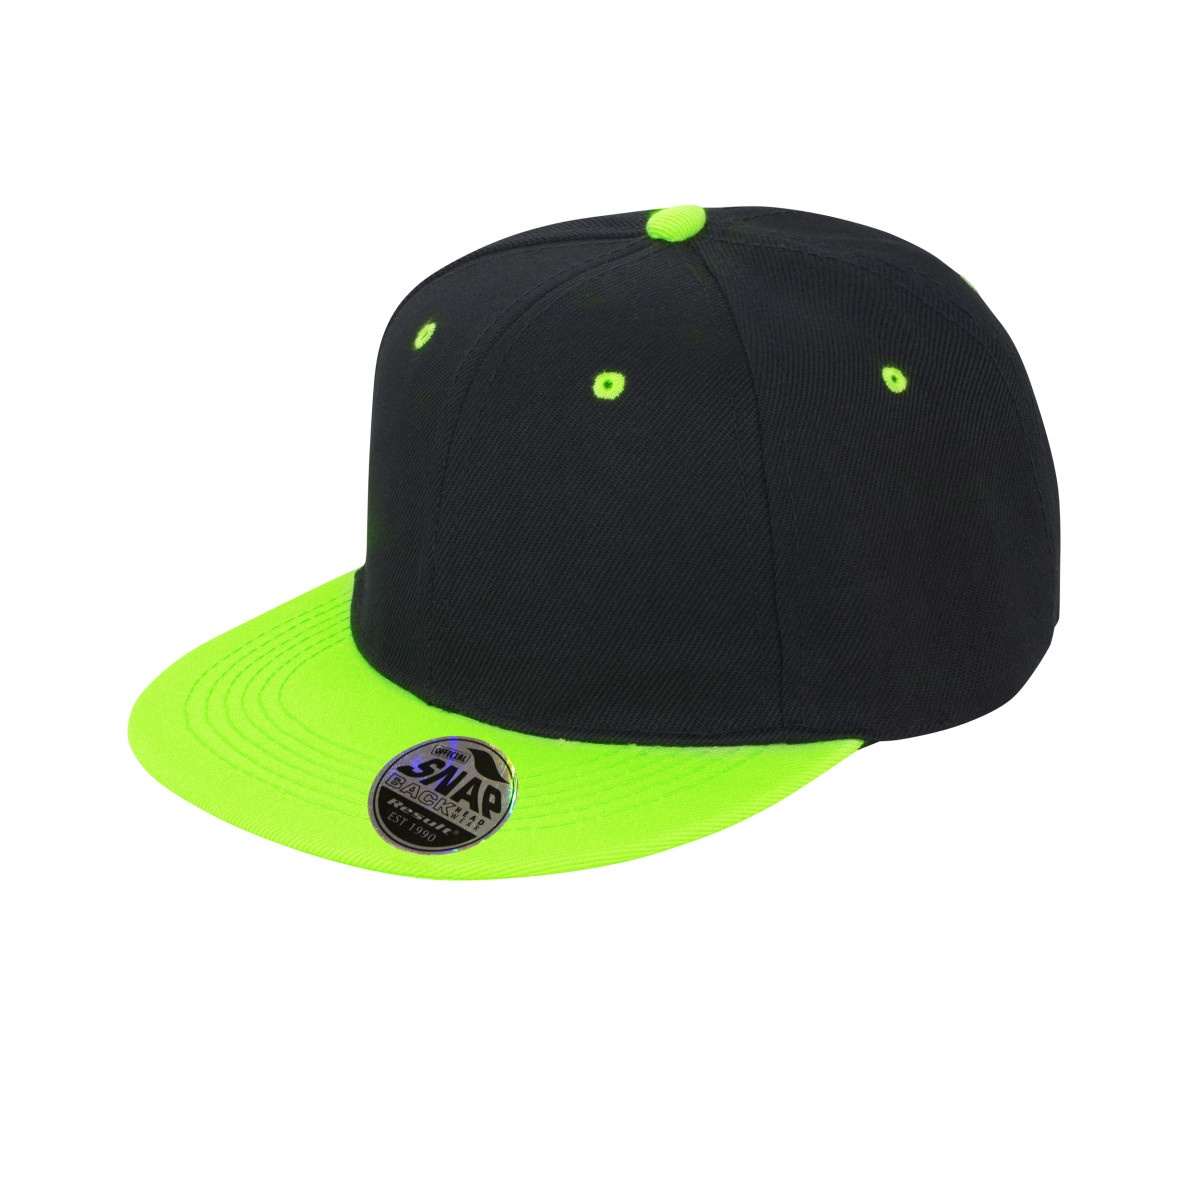 329ff3501c5 Result Unisex Core Bronx Original Flat Peak Snapback Dual Colour Cap One  Size Black purple. About this product. Picture 1 of 4  Picture 2 of 4   Picture 3 of ...